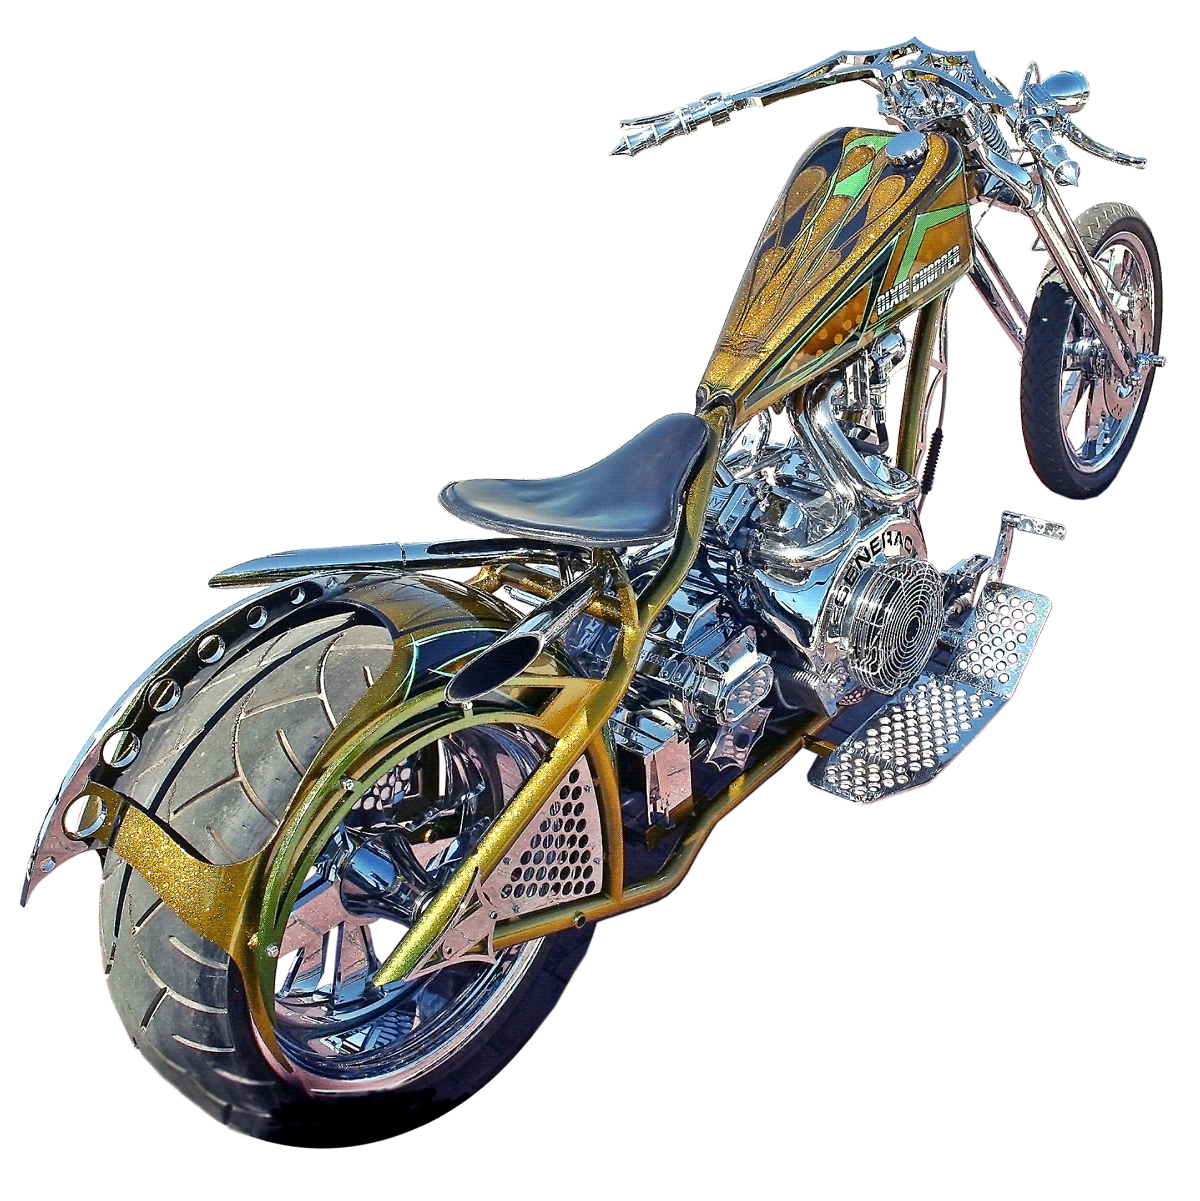 Custom Motorcycle Builders London